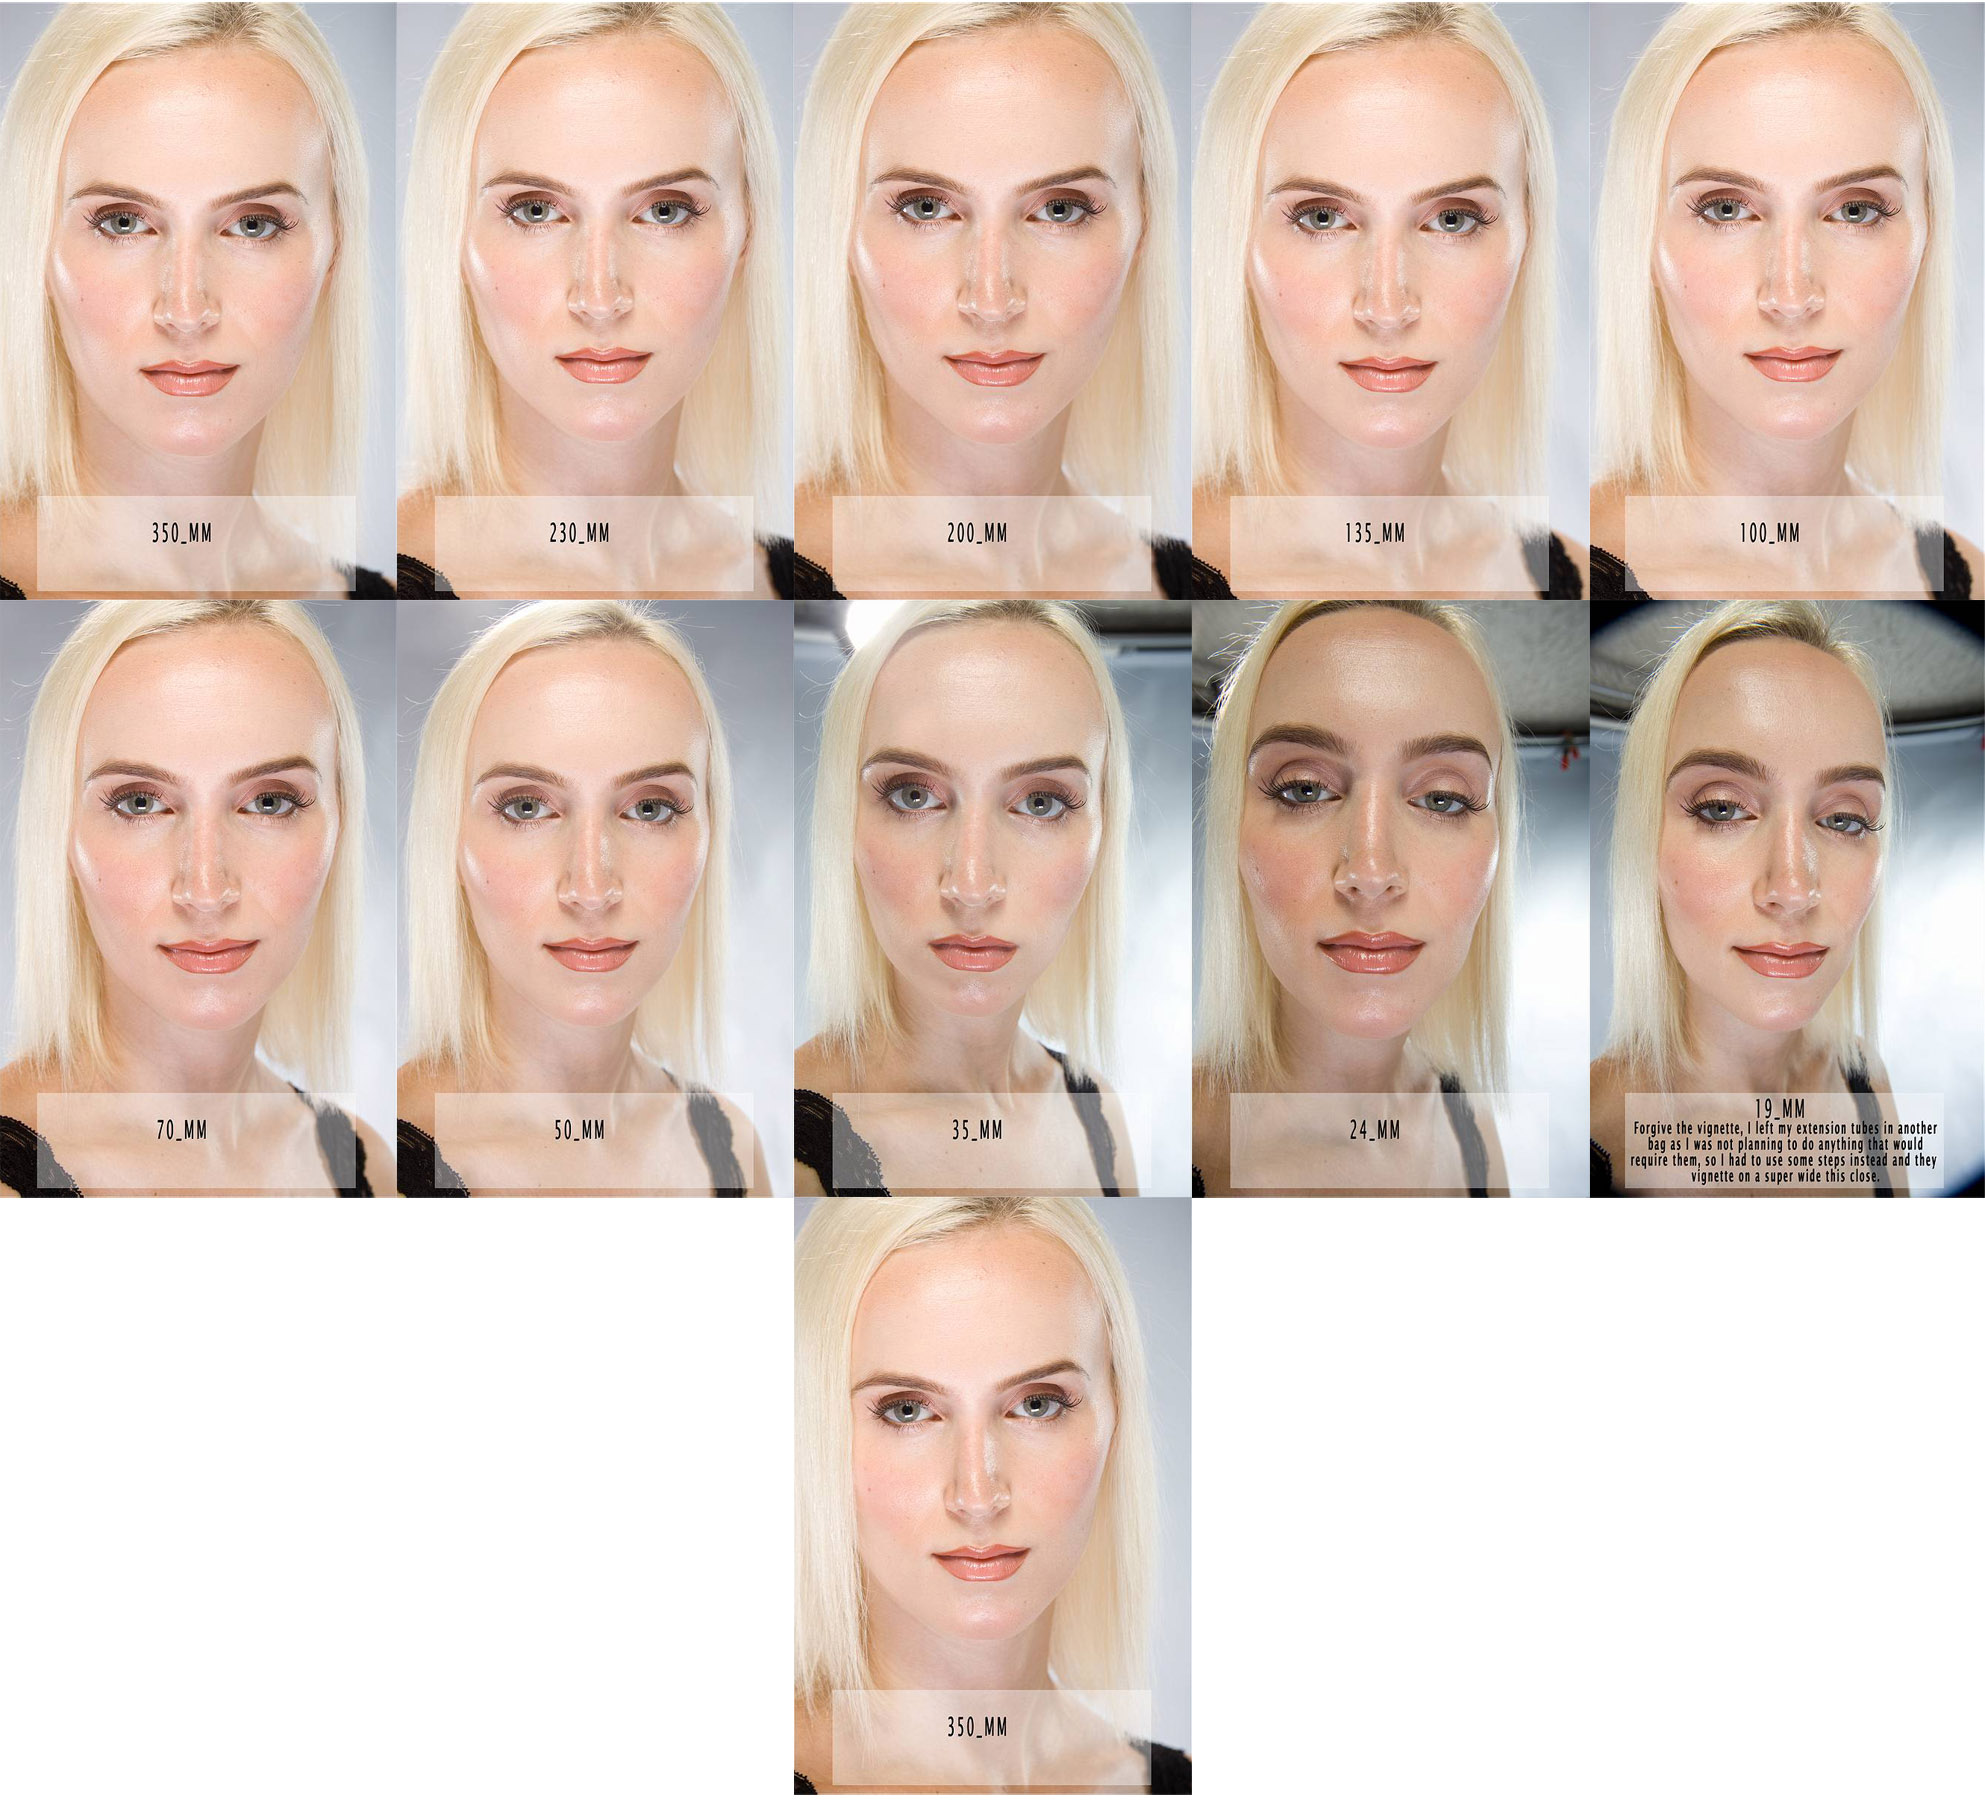 Effect of Lens Focal Length on Portraits